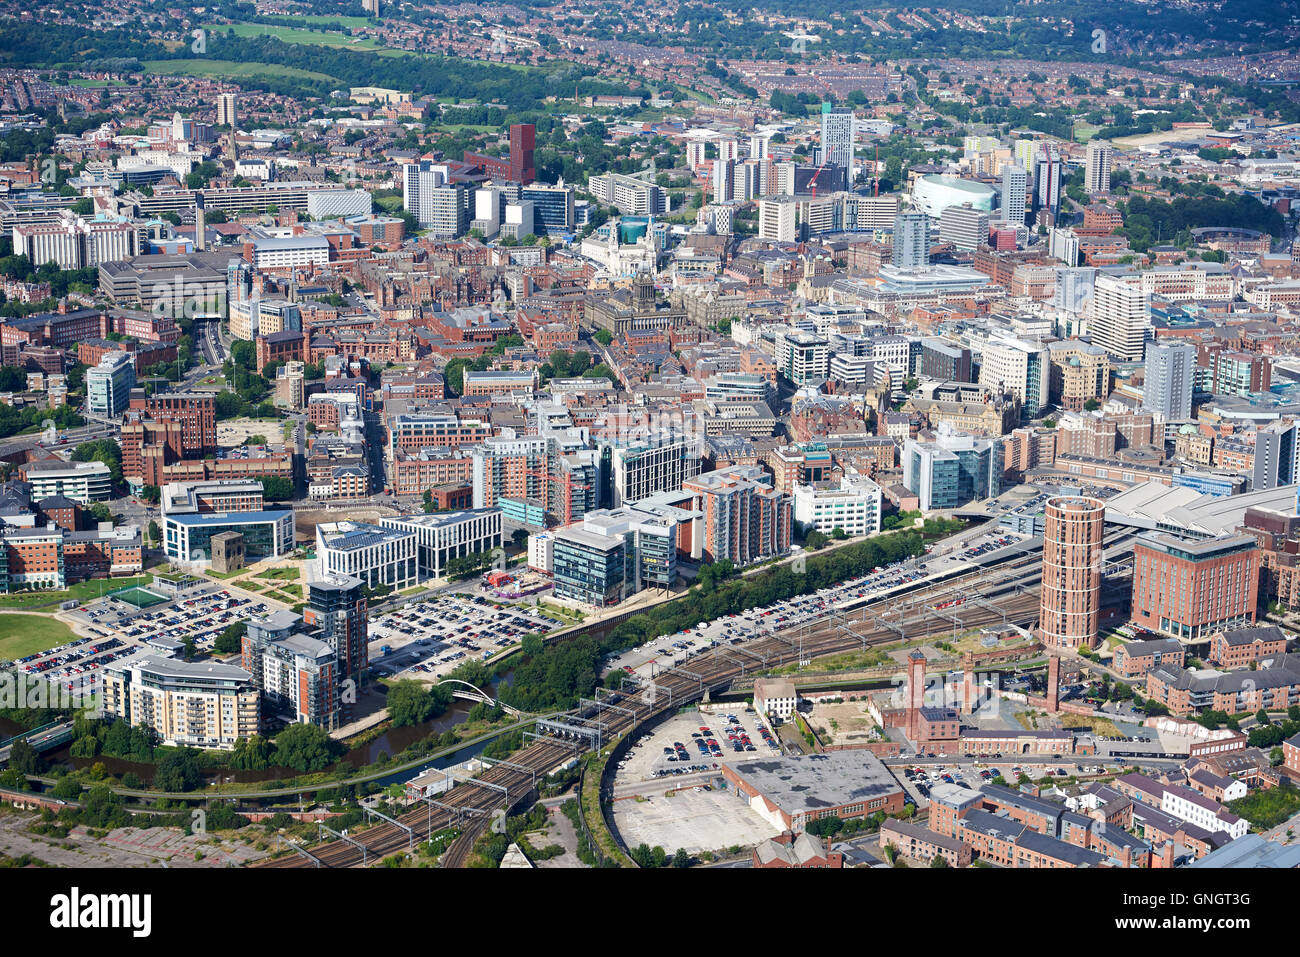 Leeds City Centre from the air, featuring the business district, West Yorkshire, Northern England, UK - Stock Image